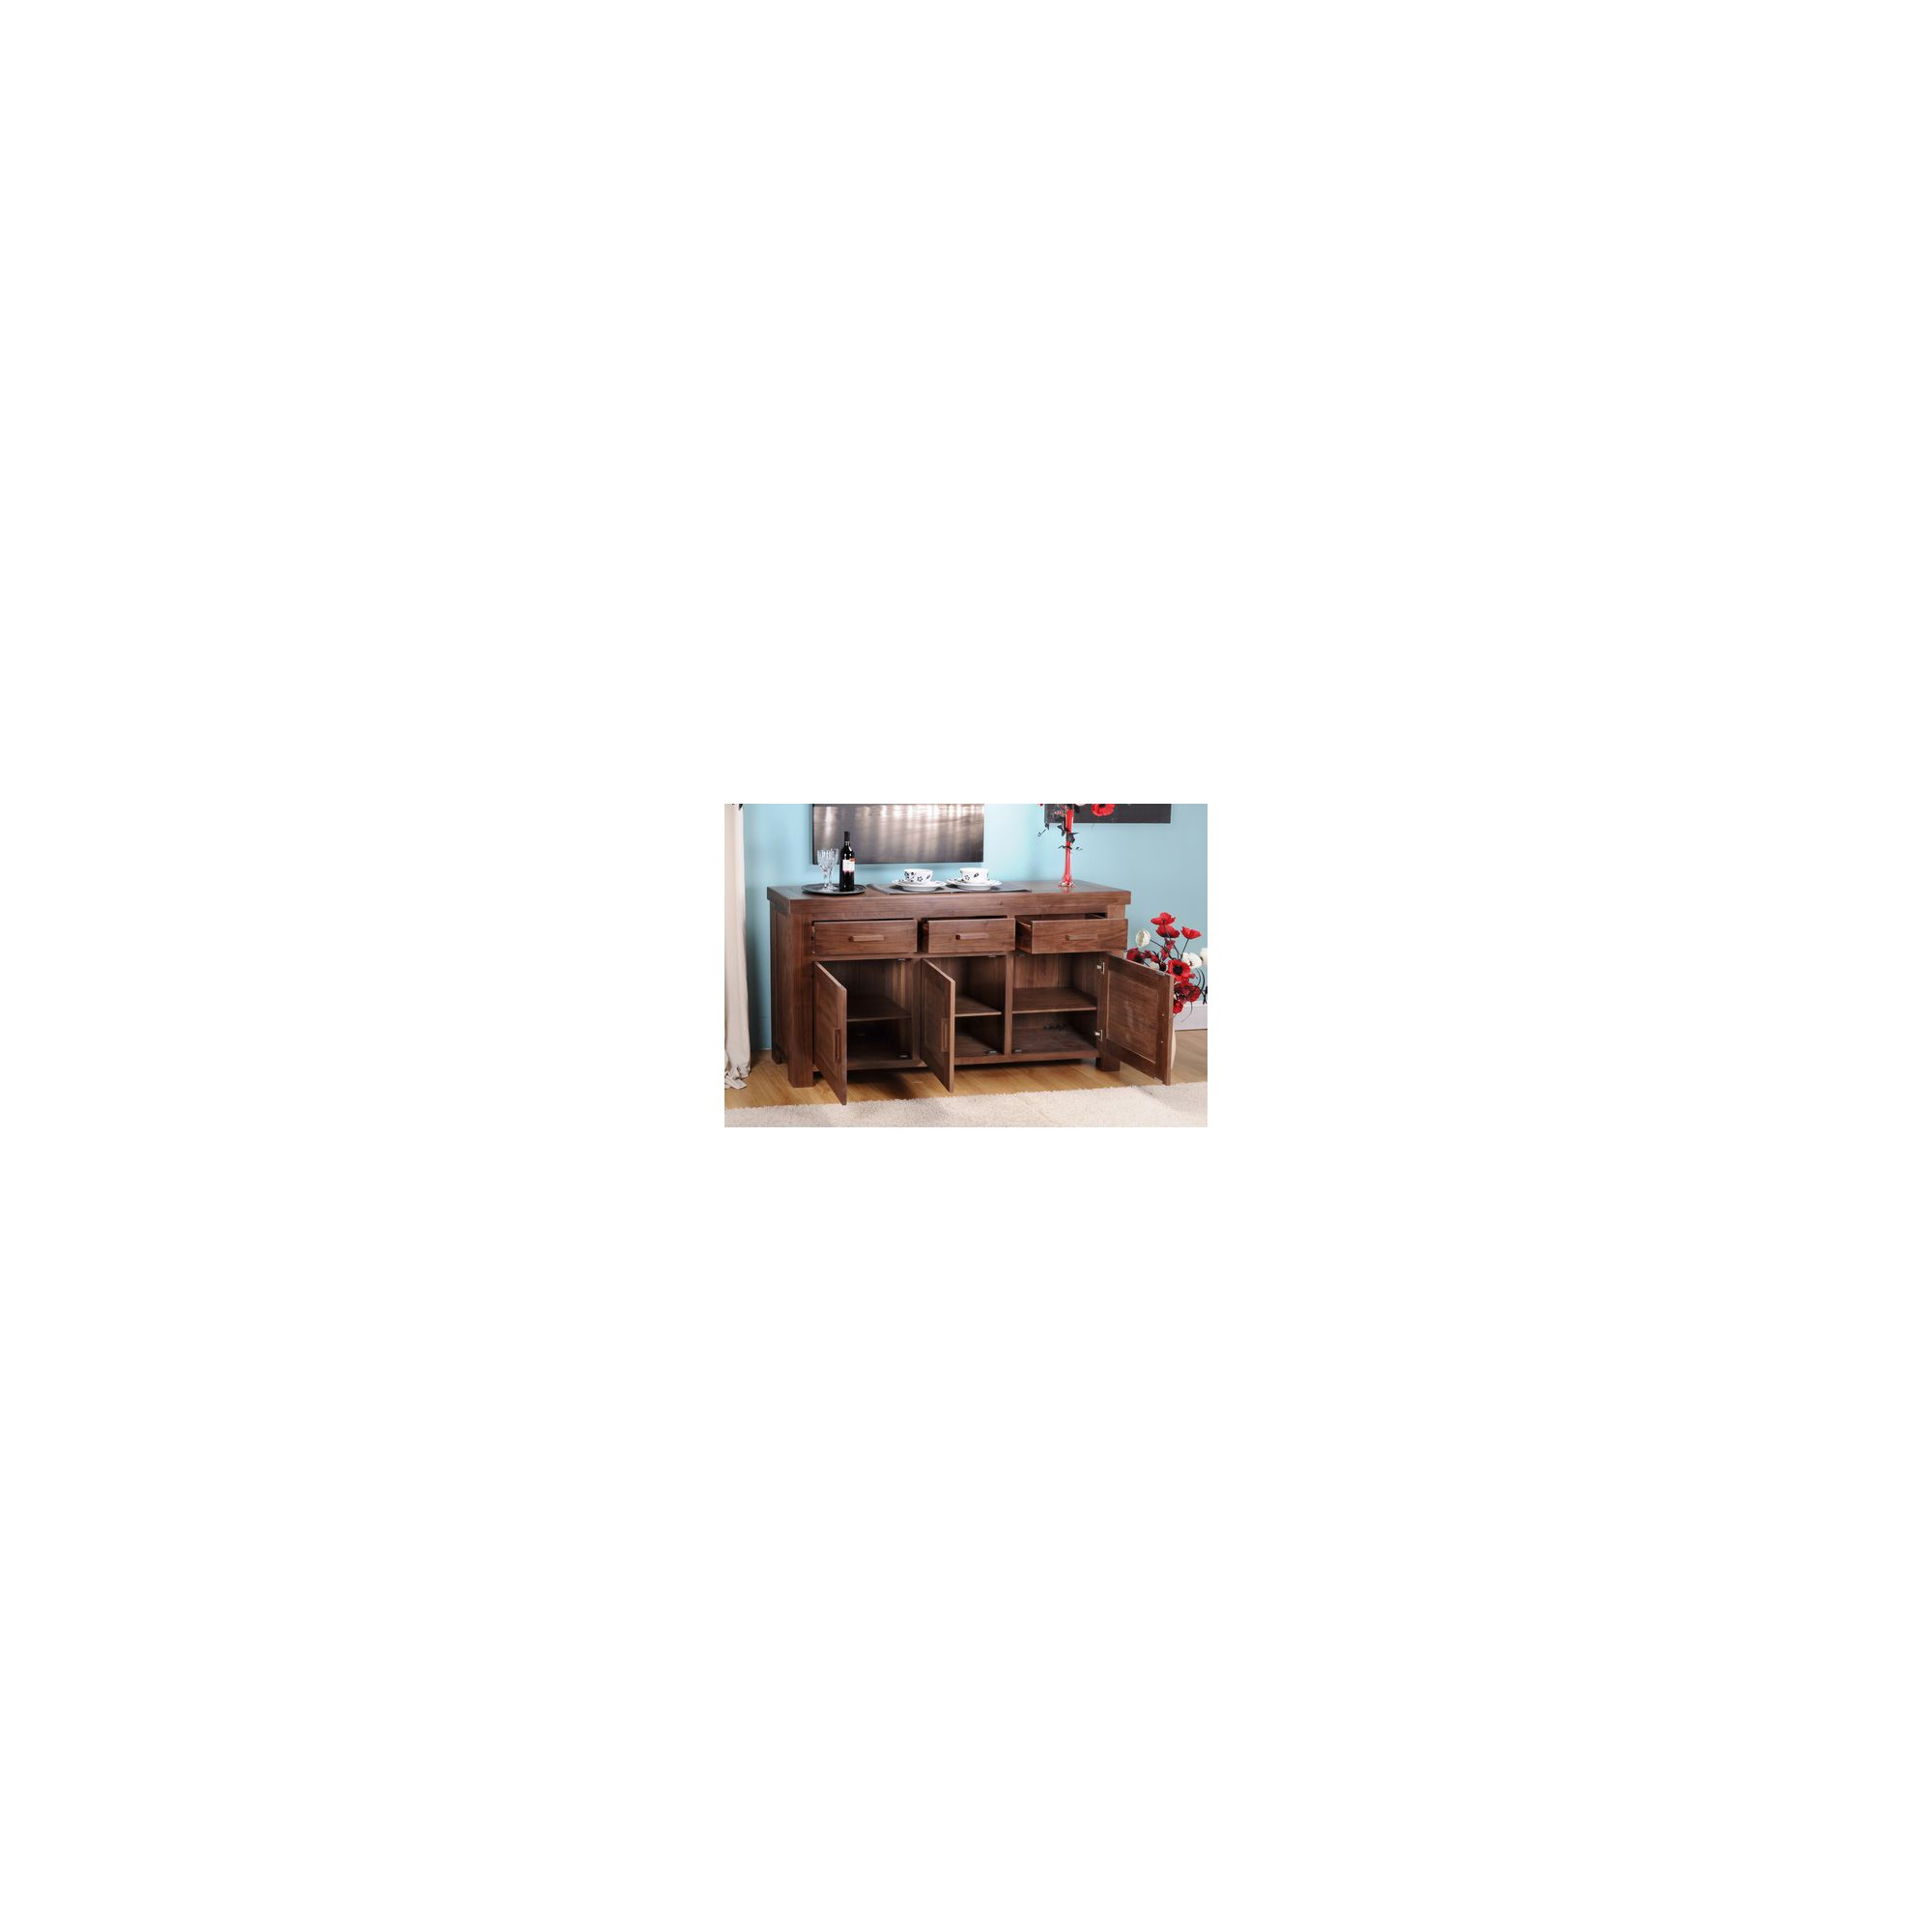 Shankar Enterprises Grand Marseille Large Sideboard - Walnut at Tesco Direct